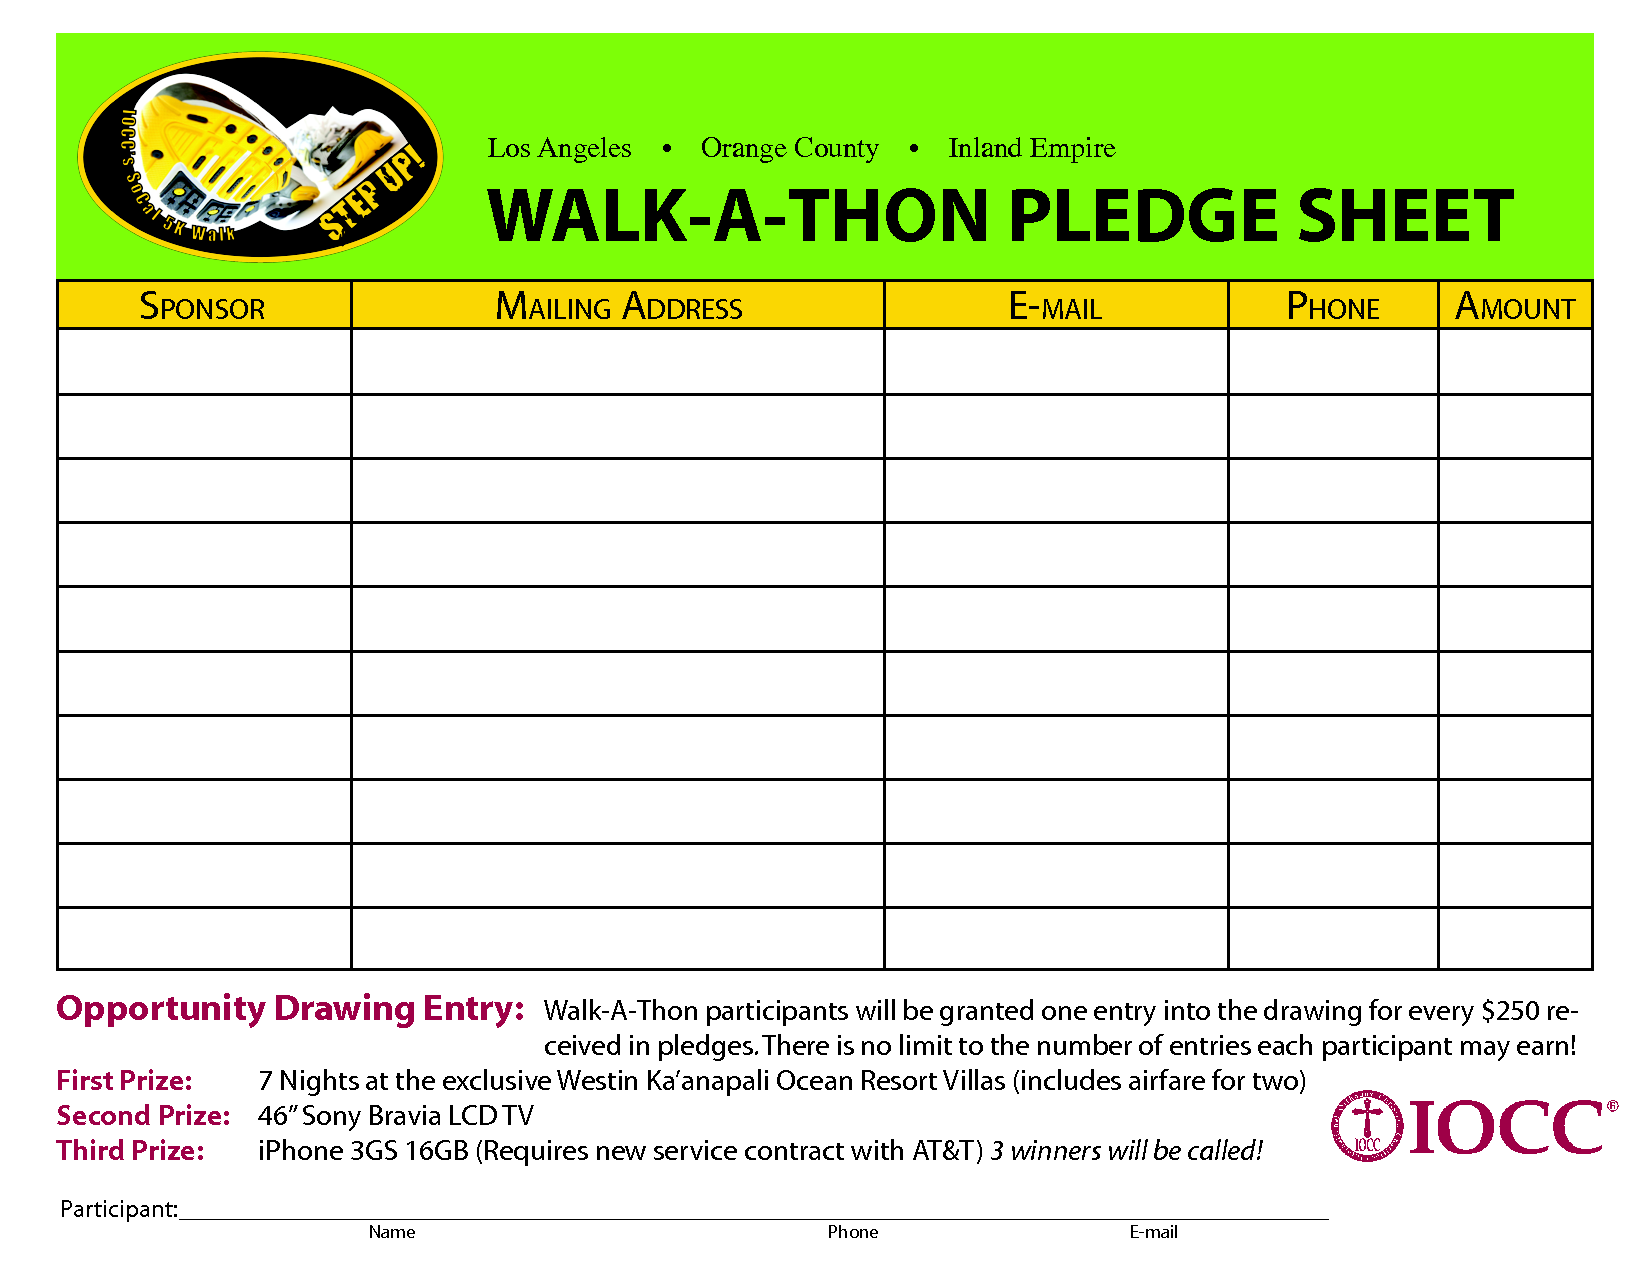 Walk-a-thon fundraiser pledge form - Templates | TOPS TIPS | Pinterest